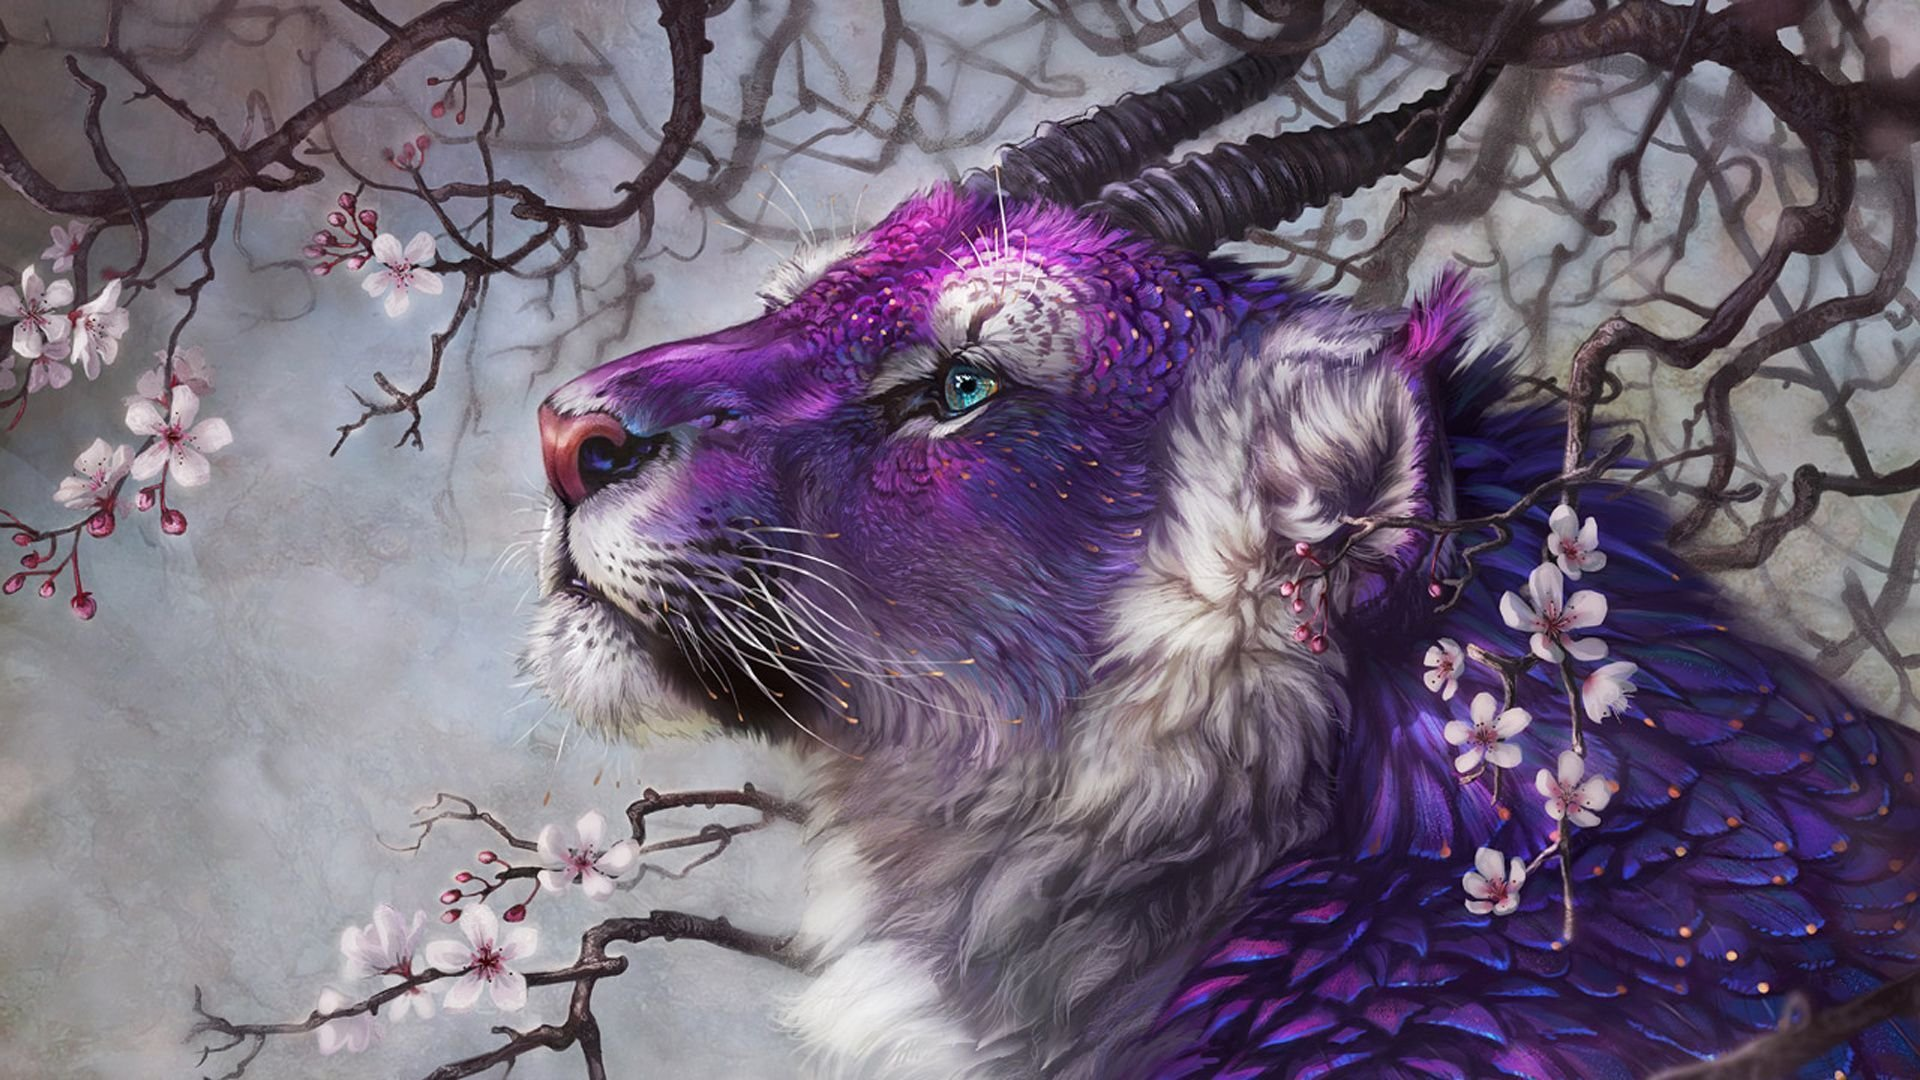 Mystical Creatures In The Fall Wallpaper Fantasy Big Cat Hd Wallpaper Background Image